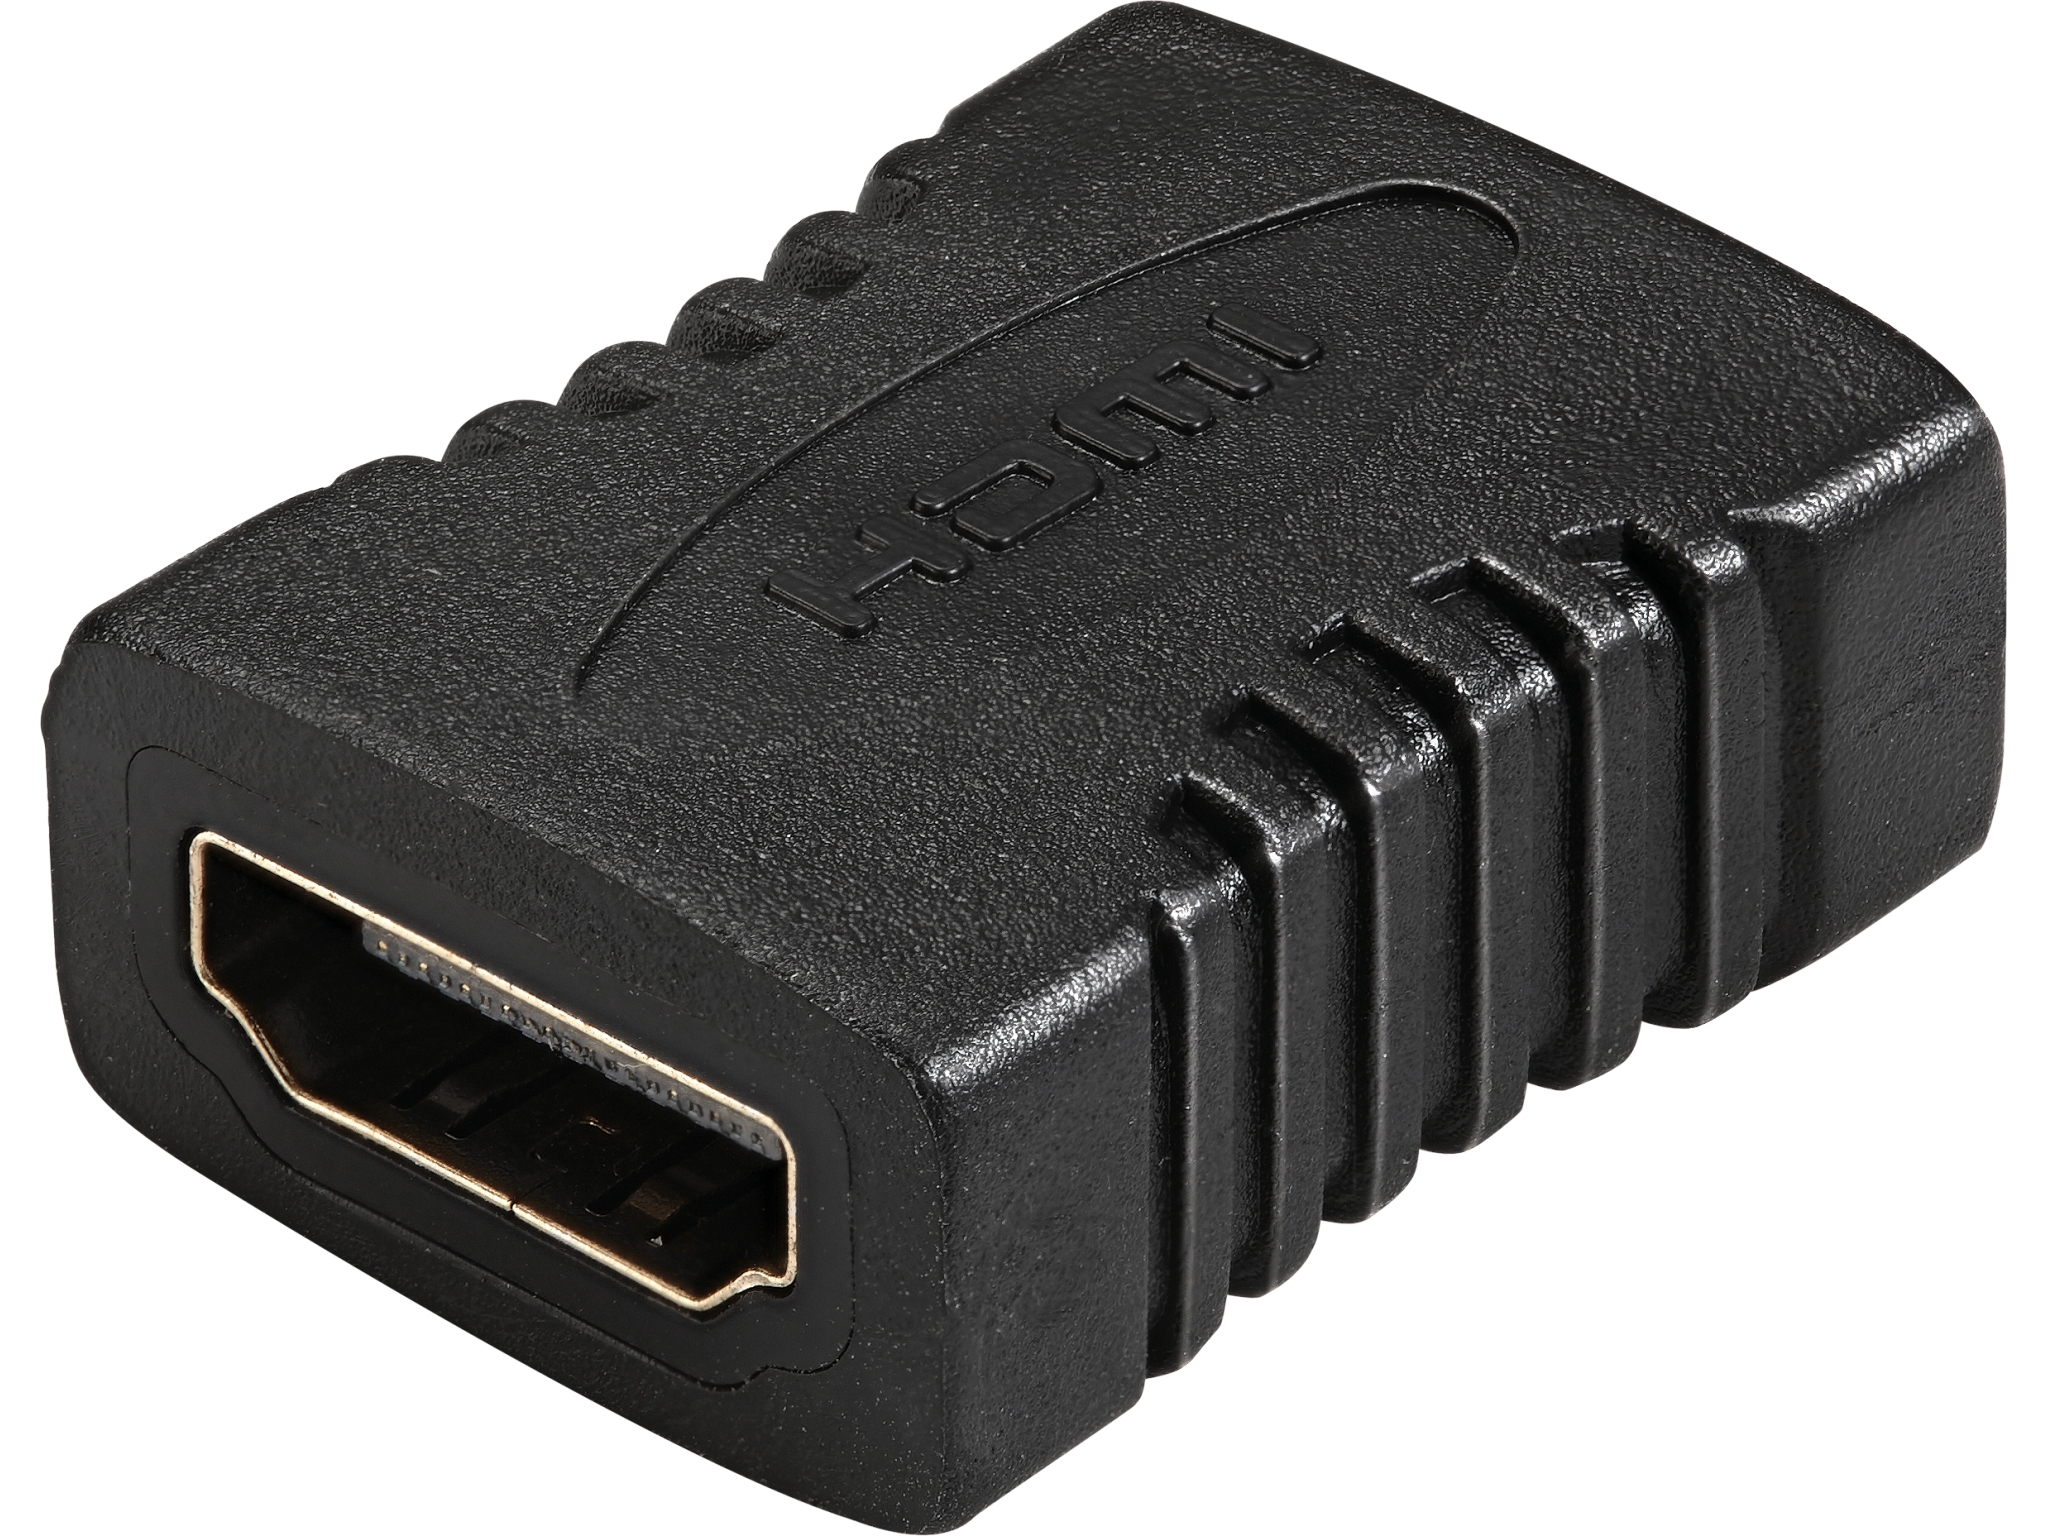 HDMI 2.0 Connection F/F